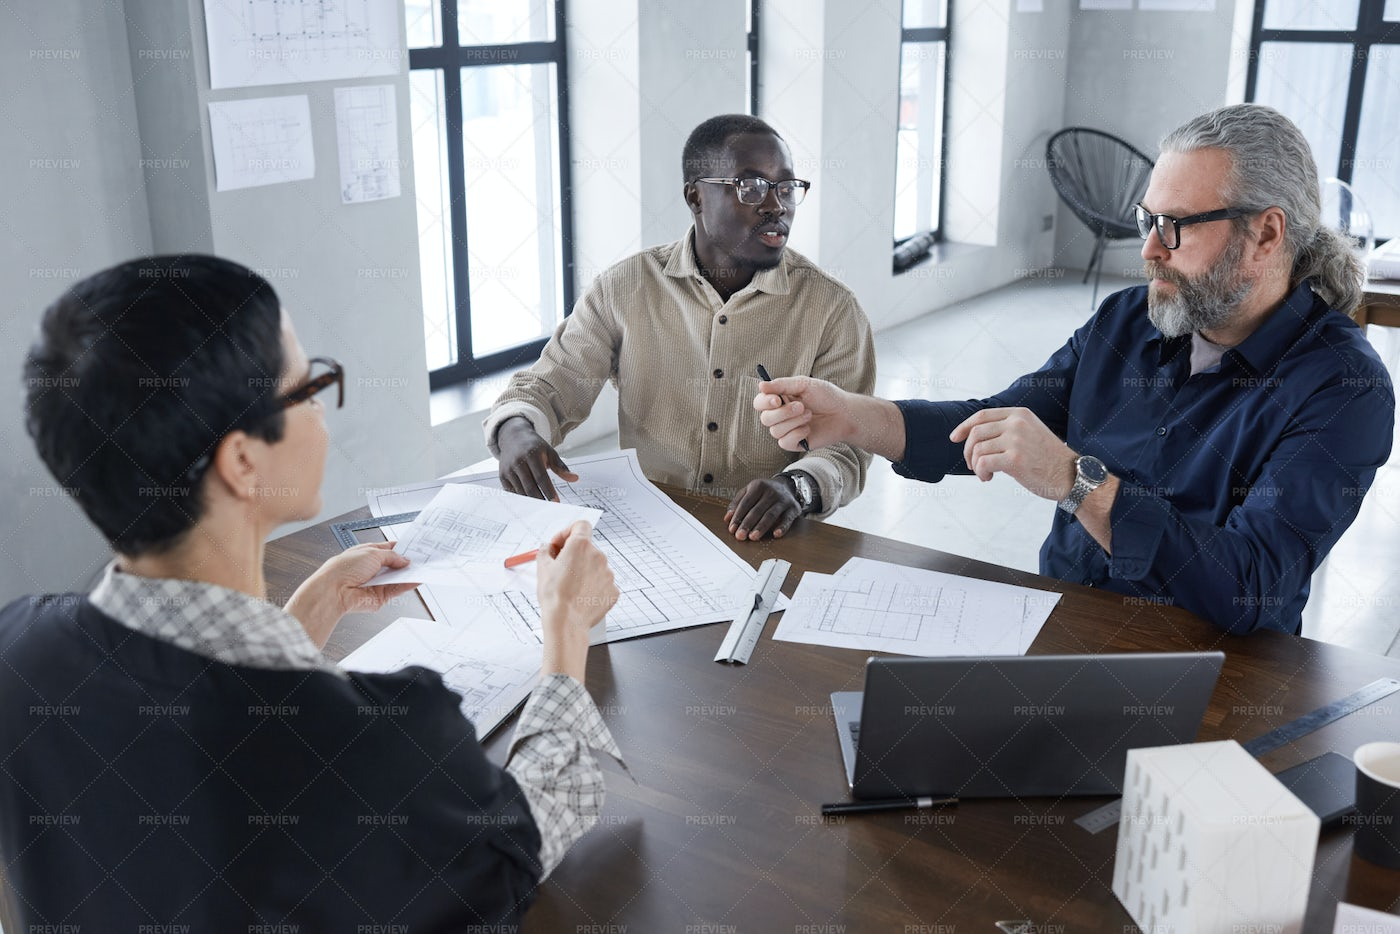 Architects Having Business Meeting: Stock Photos